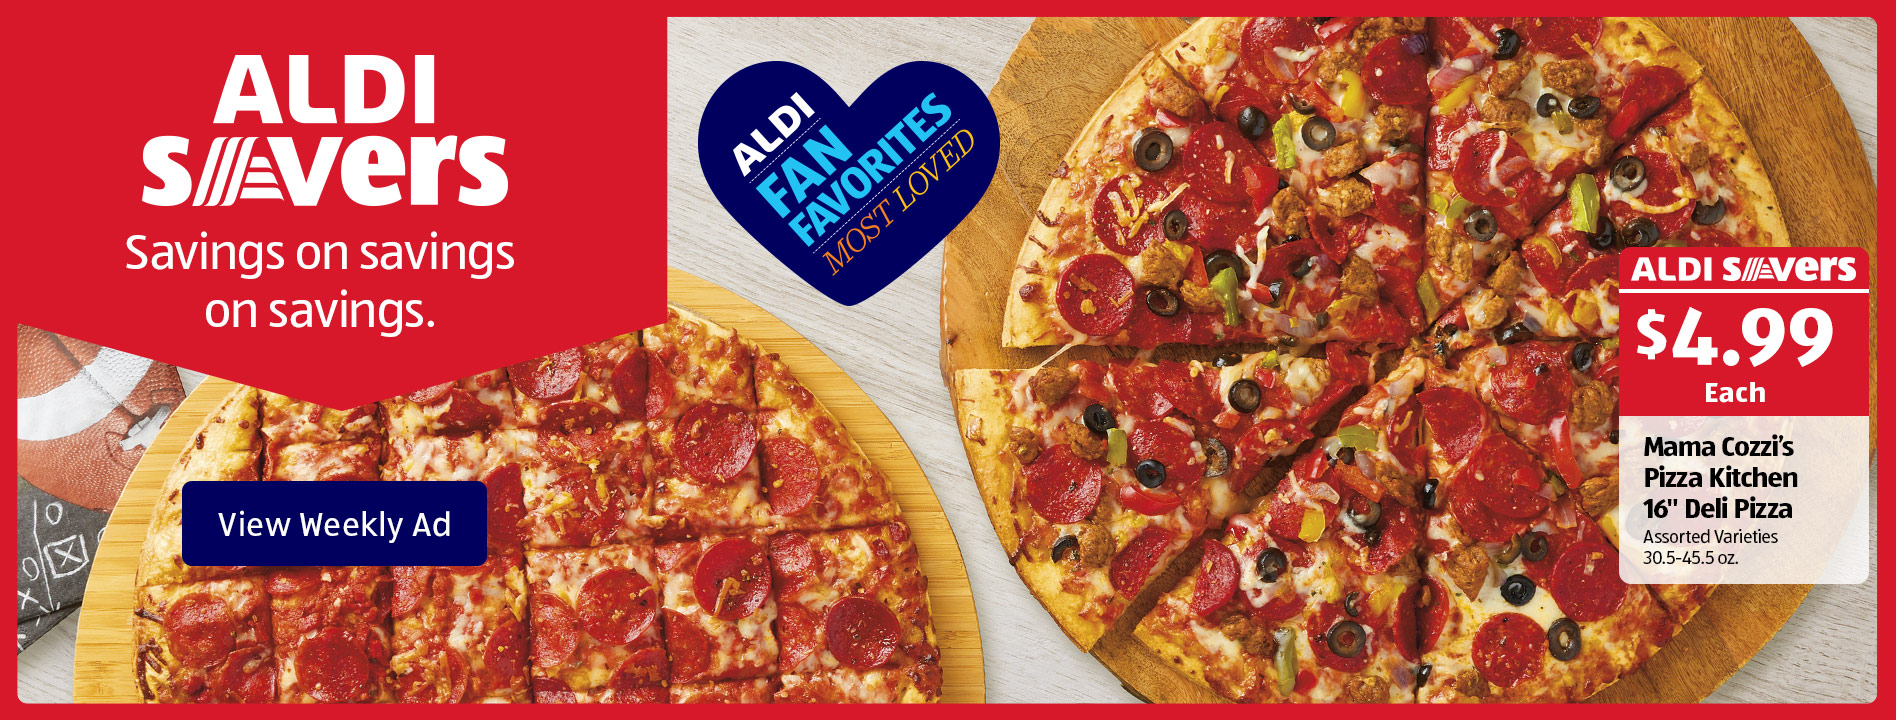 Aldi Grocery Stores Quality Food Everyday Low Prices